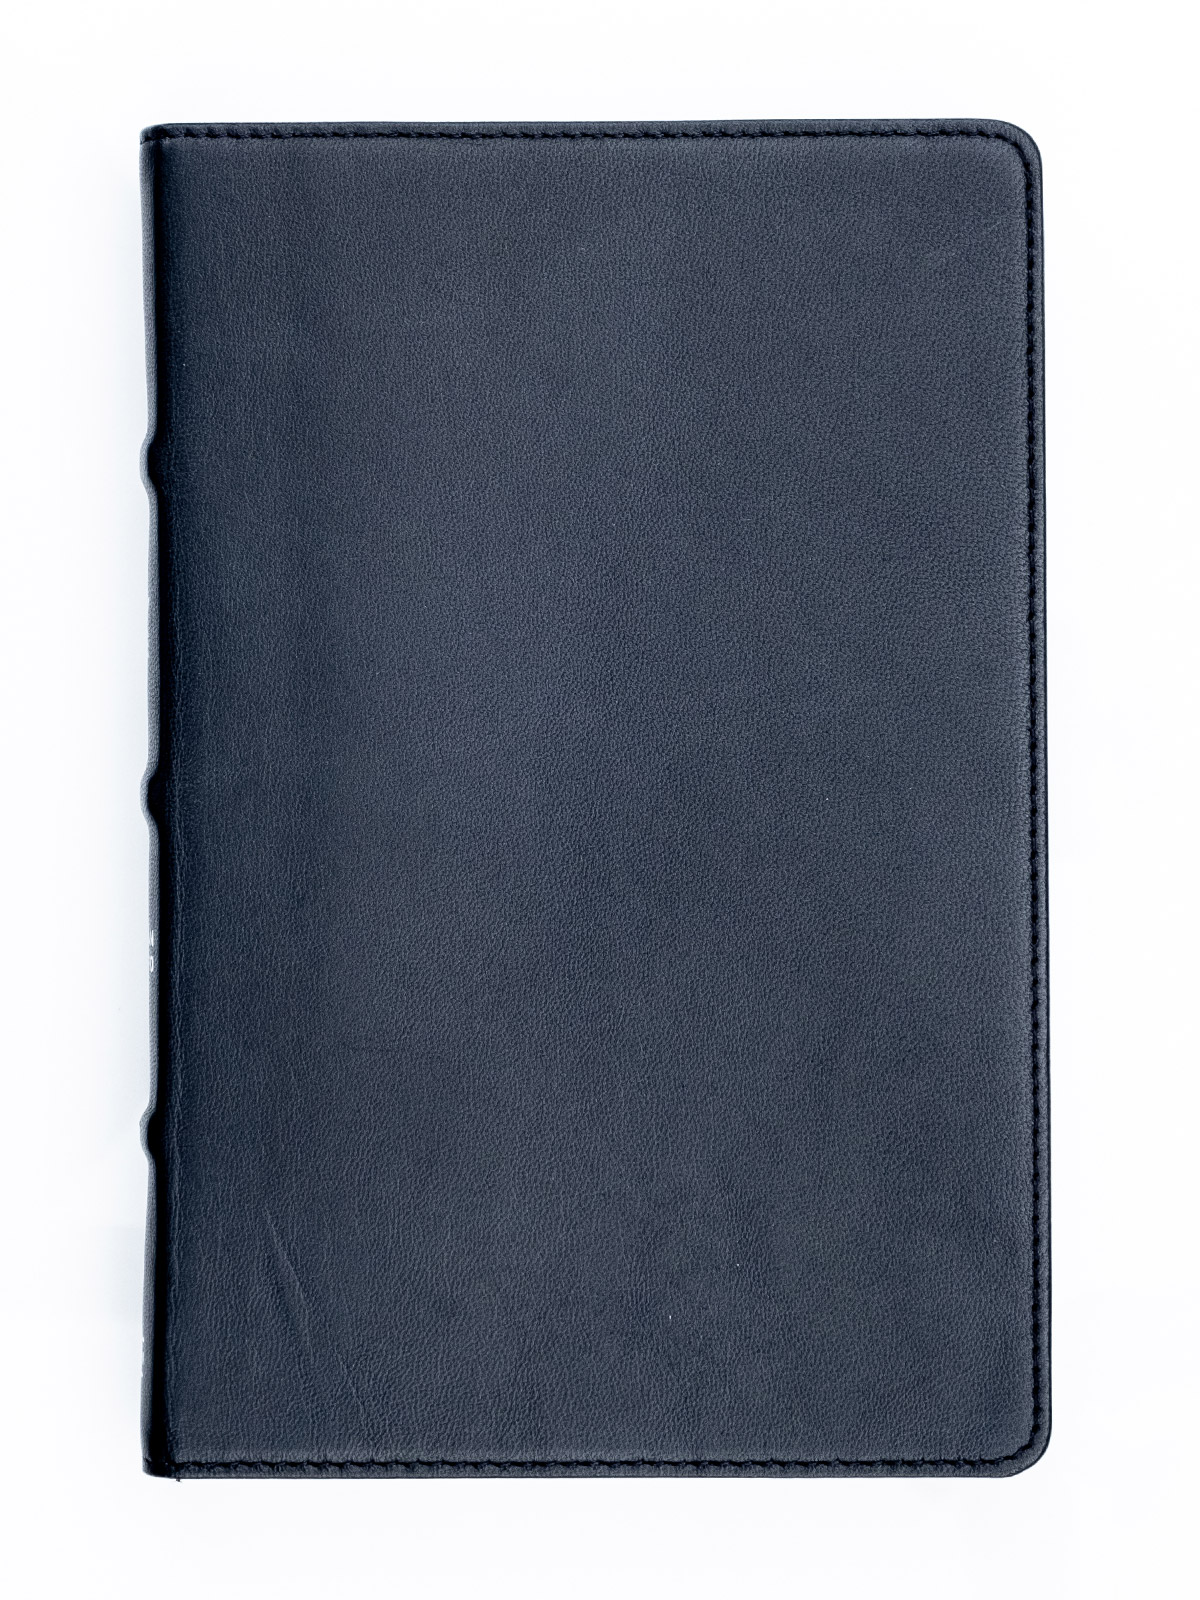 CSB Ultrathin Premium - Leather